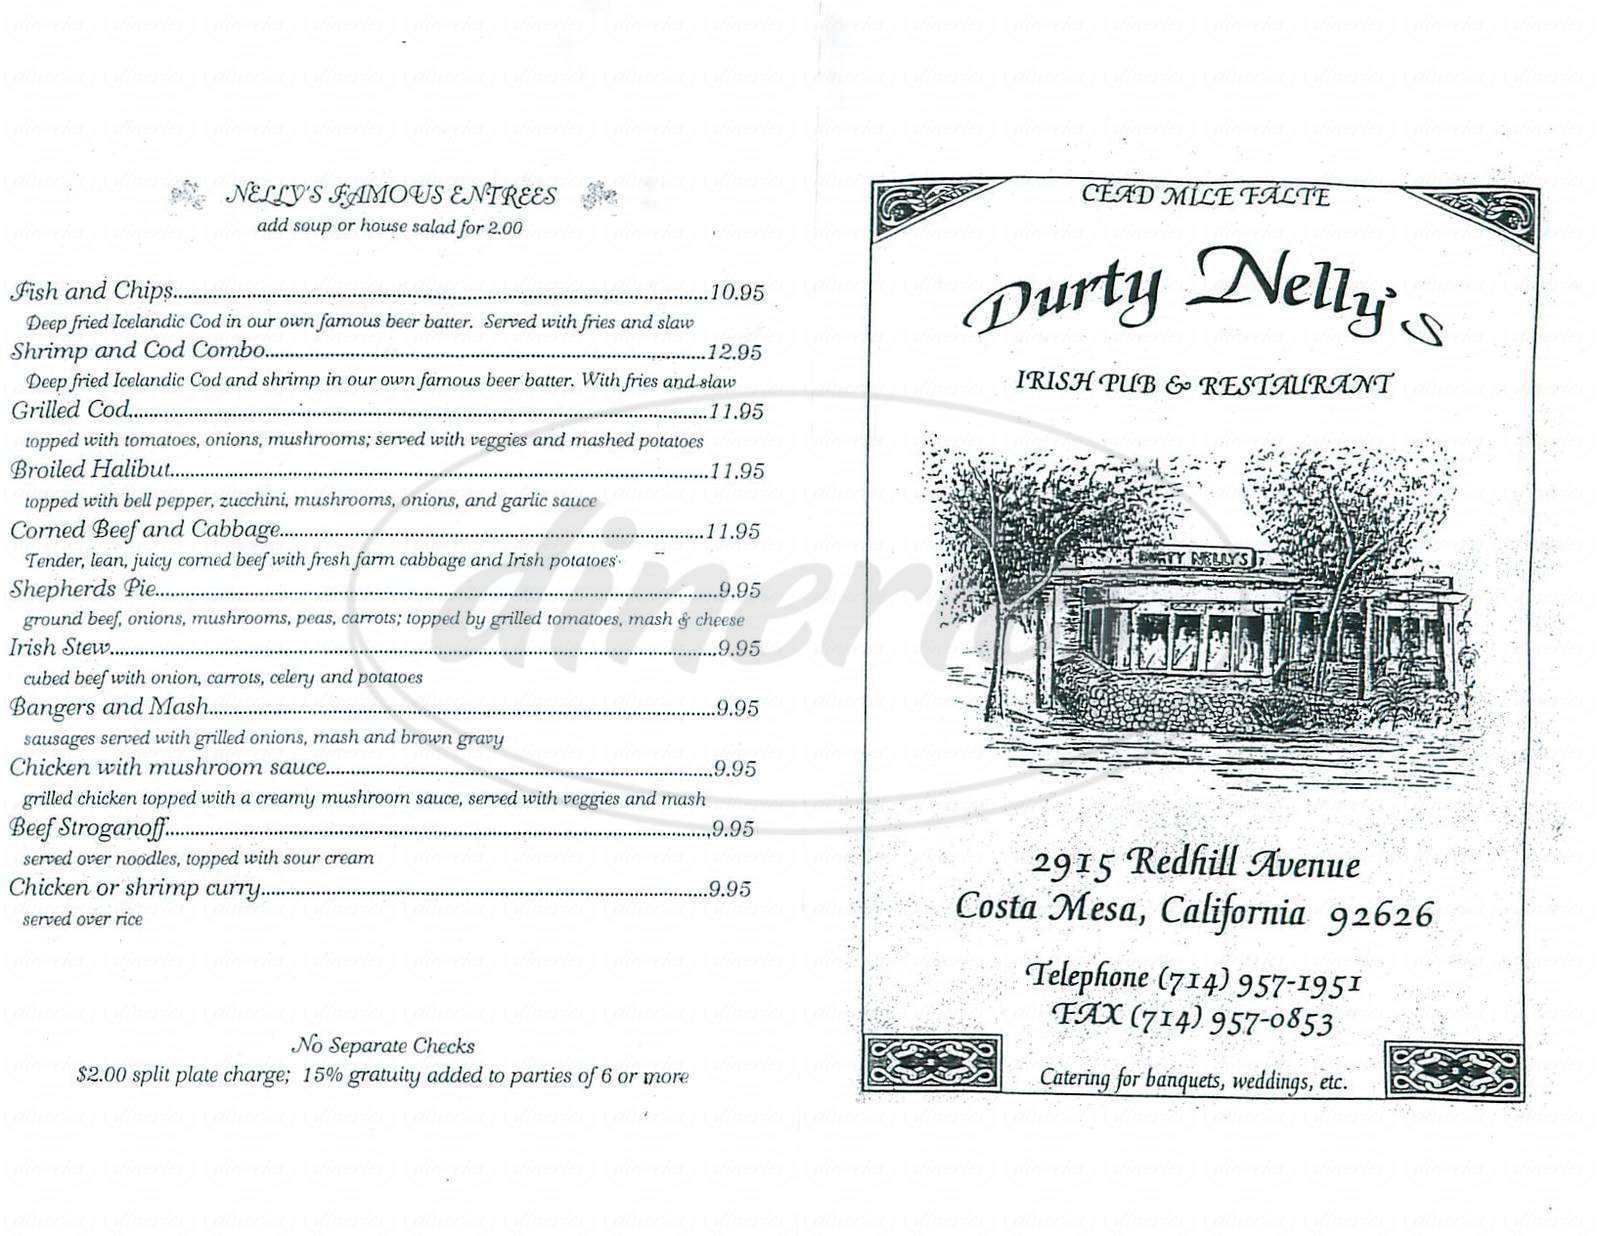 menu for Durty Nellys